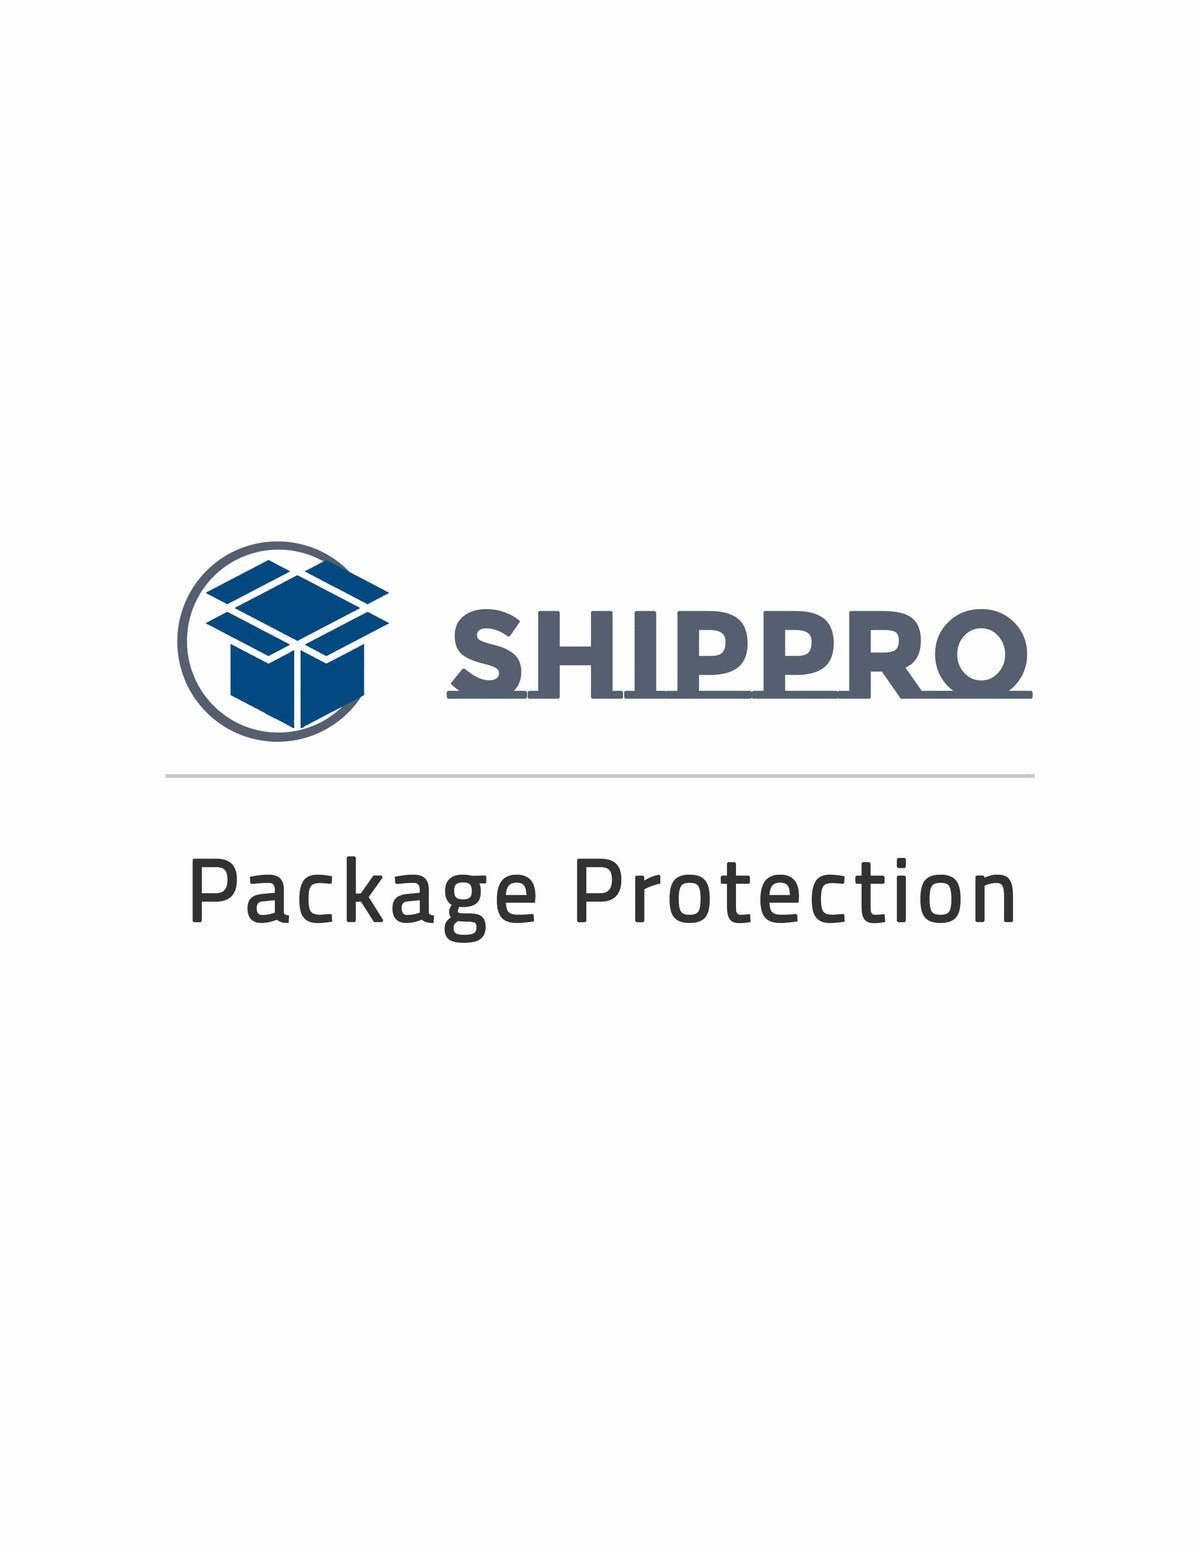 ShipPro Package Protection